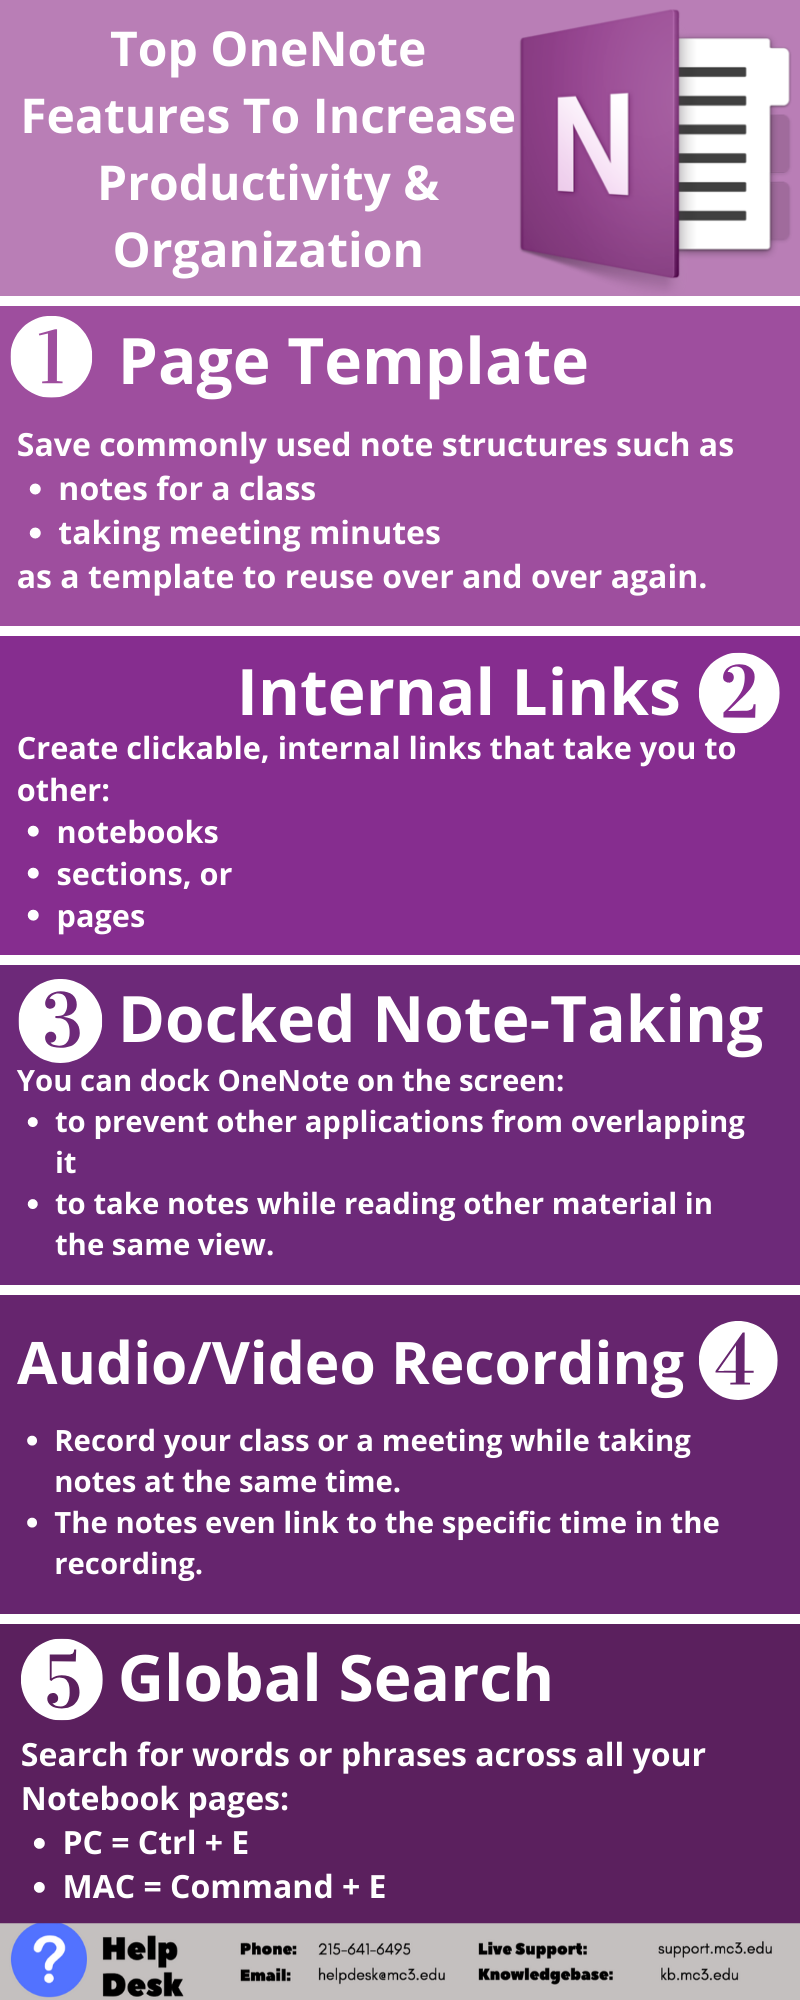 Title: Top OneNote Features to Increase Productivity and Organization  Feature #1: Page Template. Save commonly used note structures such as notes for a class or taking meeting minutes as a template to reuse over and over again.   Feature #2: Internal Links. Create clickable, internal links that take you to other notebooks, sections, or pages.   Feature #3: Docked Note-Taking. You can dock OneNote on the screen and prevent other applications from overlapping it allowing you to take notes while reading other material in the same view.   Feature #4: Audio/Video Recording. Record your class or a meeting while taking notes at the same time. The notes even link to the specific time in the recording.   Feature #5: Global Search. Use Ctrl (PC)/Command (Mac) + E to search for words or phrases across all your Notebook pages.